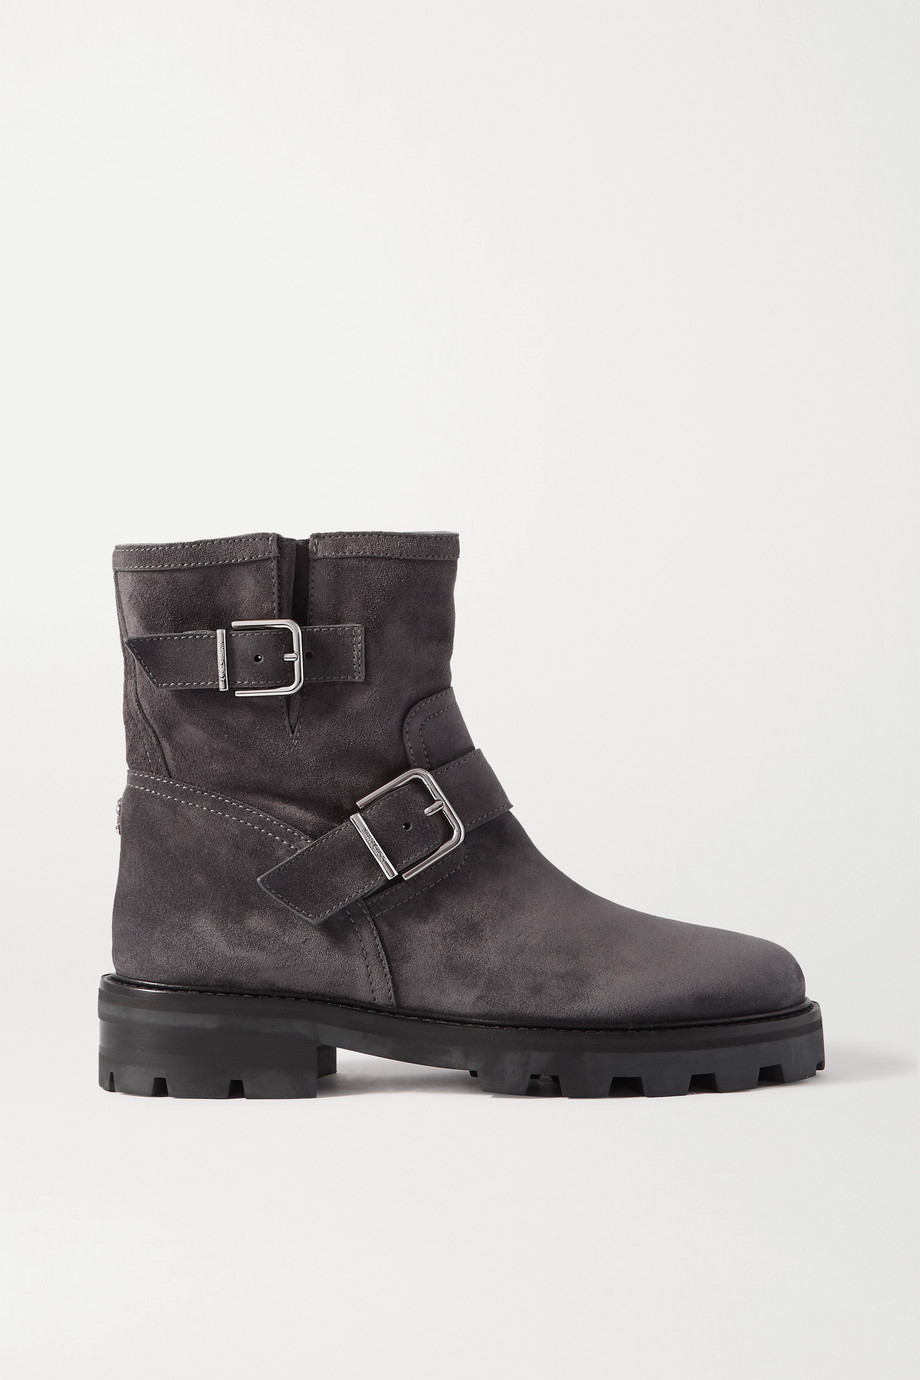 Jimmy Choo Youth II buckled suede biker boots